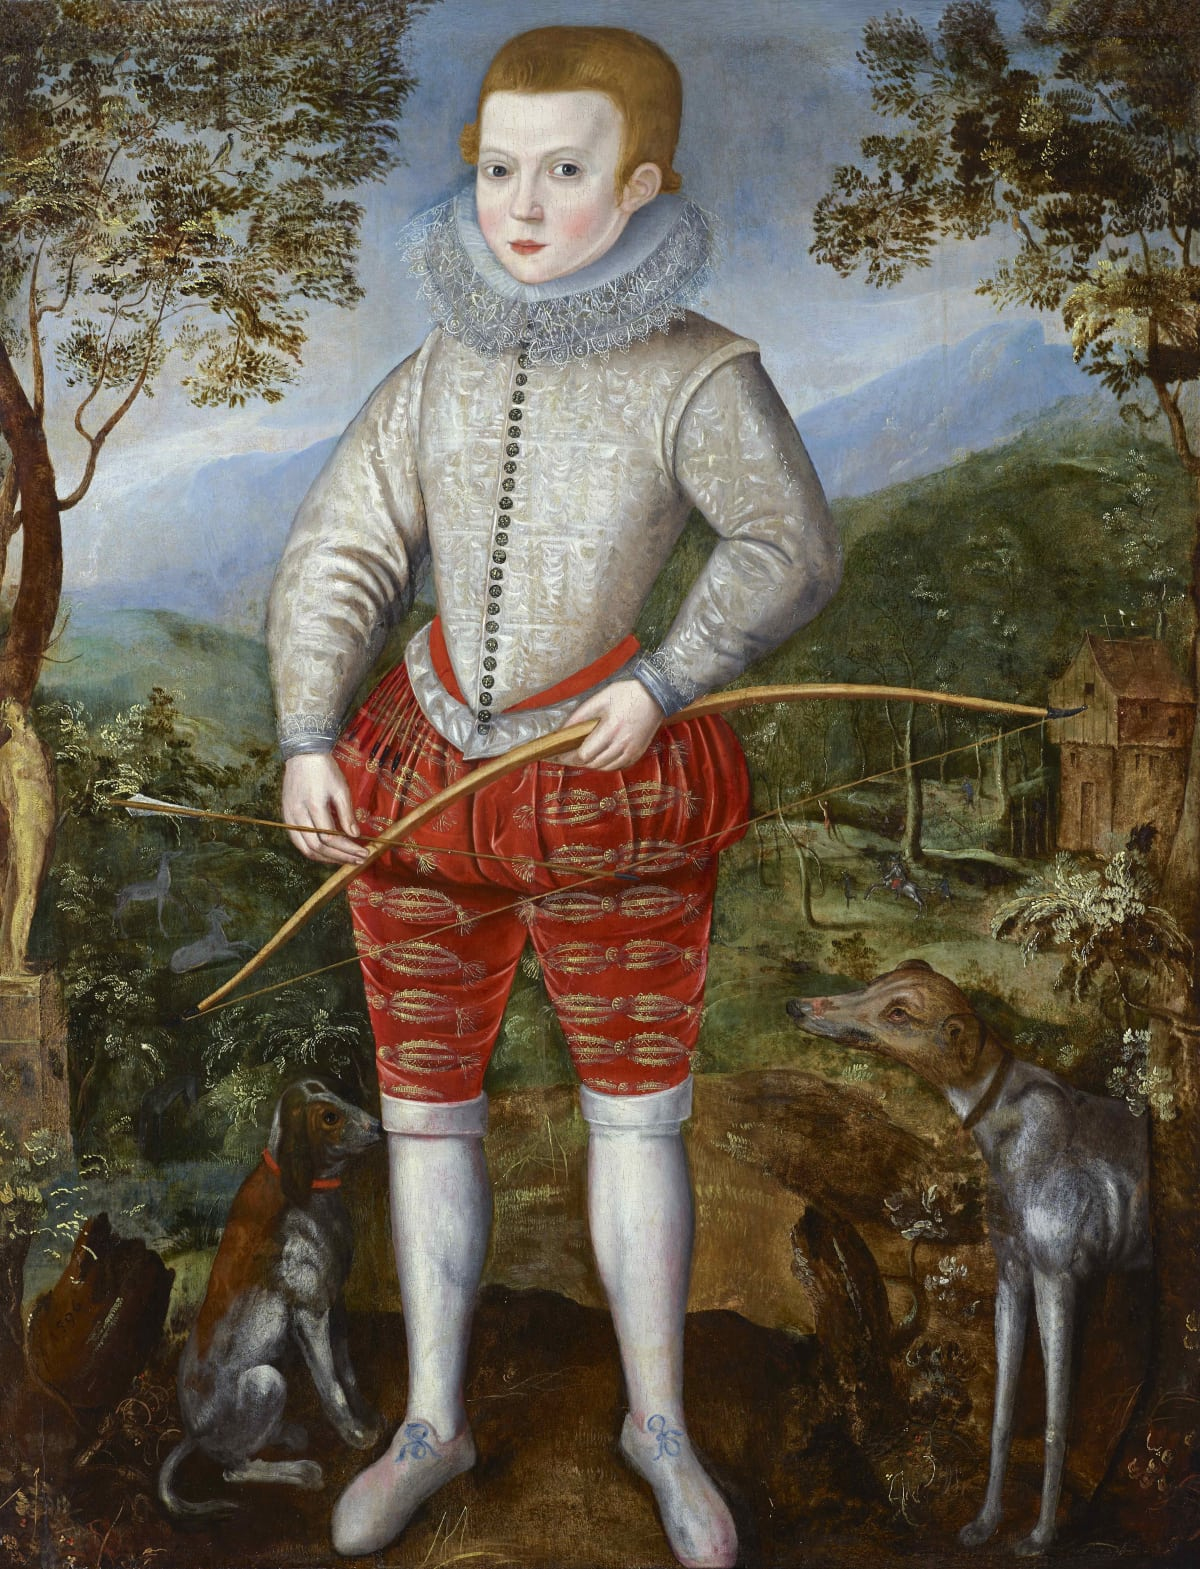 Studio of Robert Peake (c.1551 – 1619) An unknown boy, possibly of the Duncombe family of Battlesden Park, Great Brickhill, Bedfordshire, holding a bow and arrow, in a landscape, 1596 Oil on panel 47 3/8 x 34 ¾ in. (120.5 x 88.2 cm.)